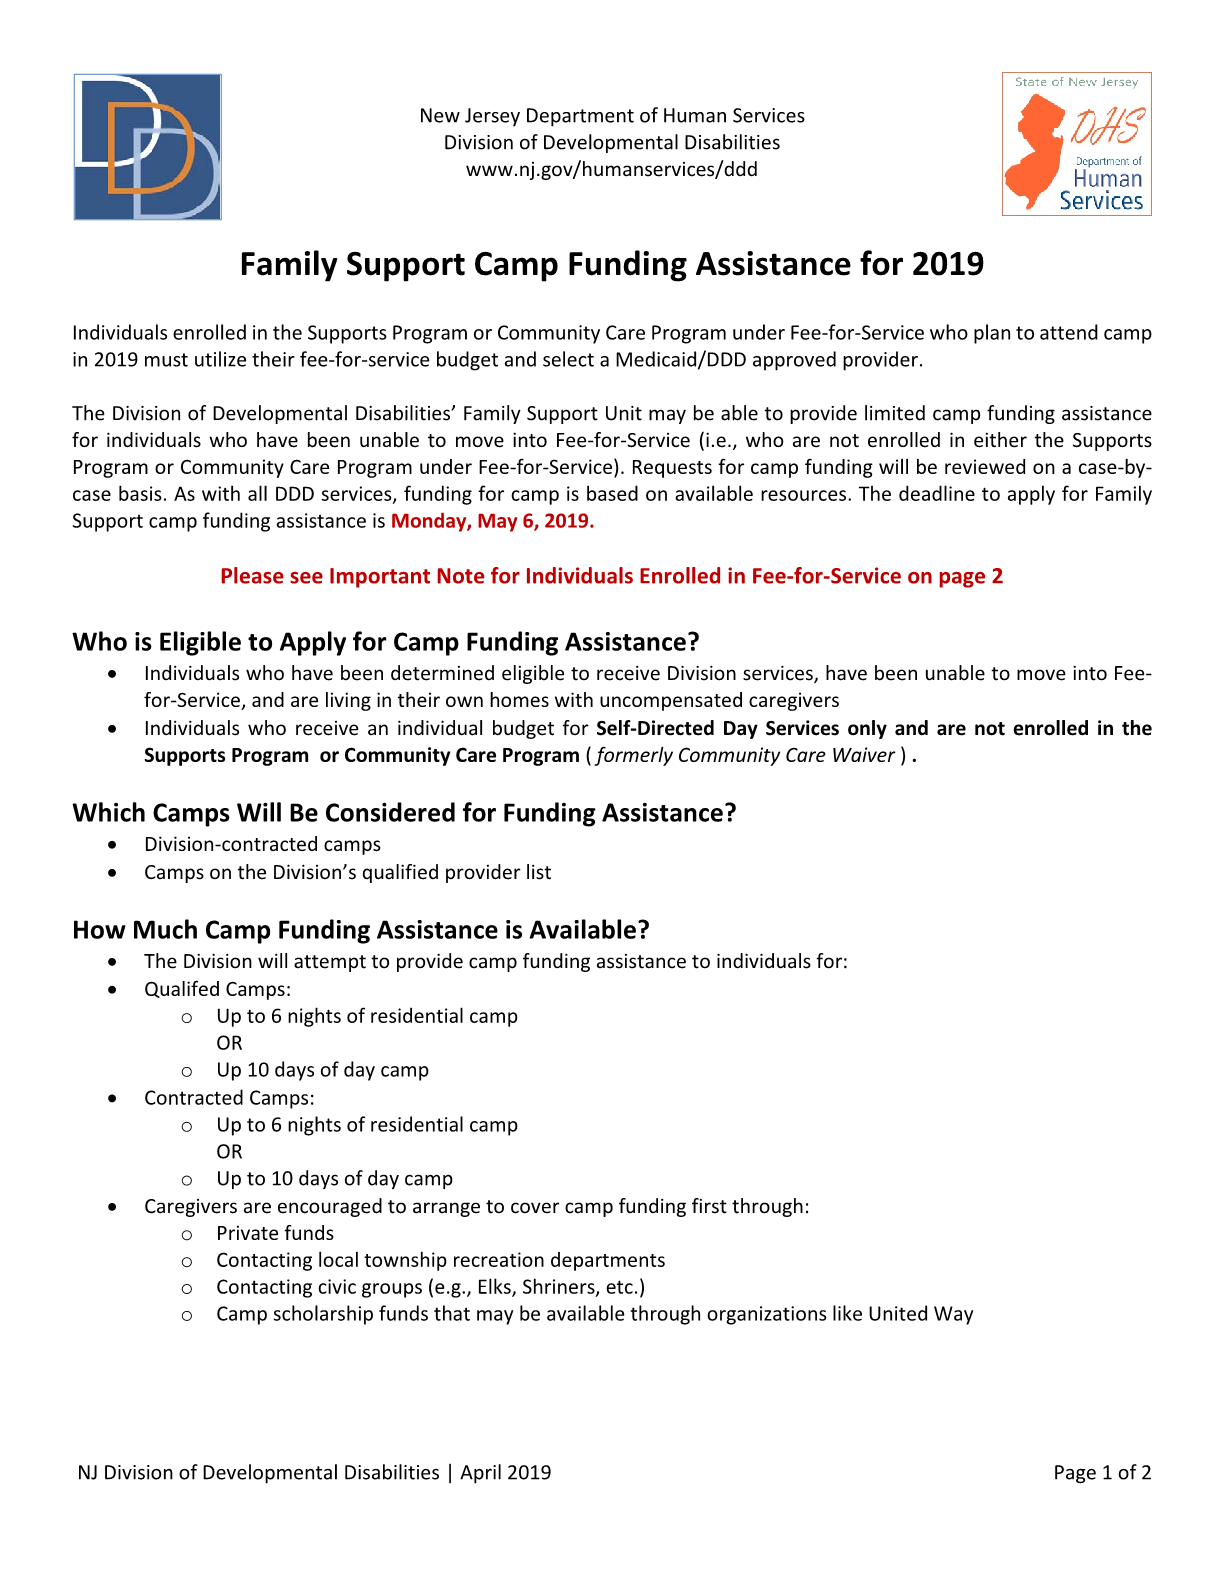 Family Support Camp Funding Assistance for 2019